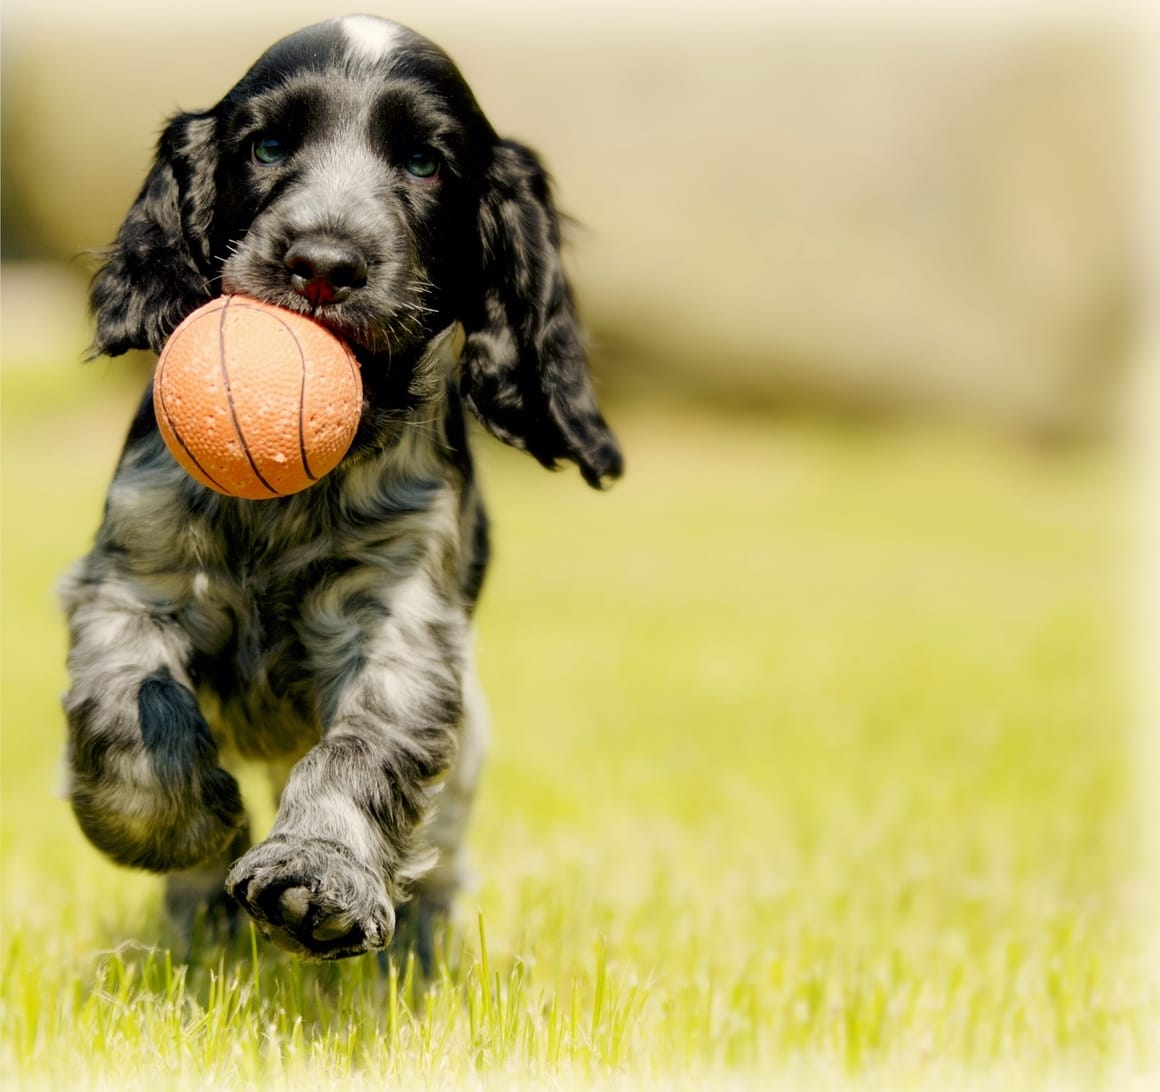 Puppy carrying a ball. Dog training